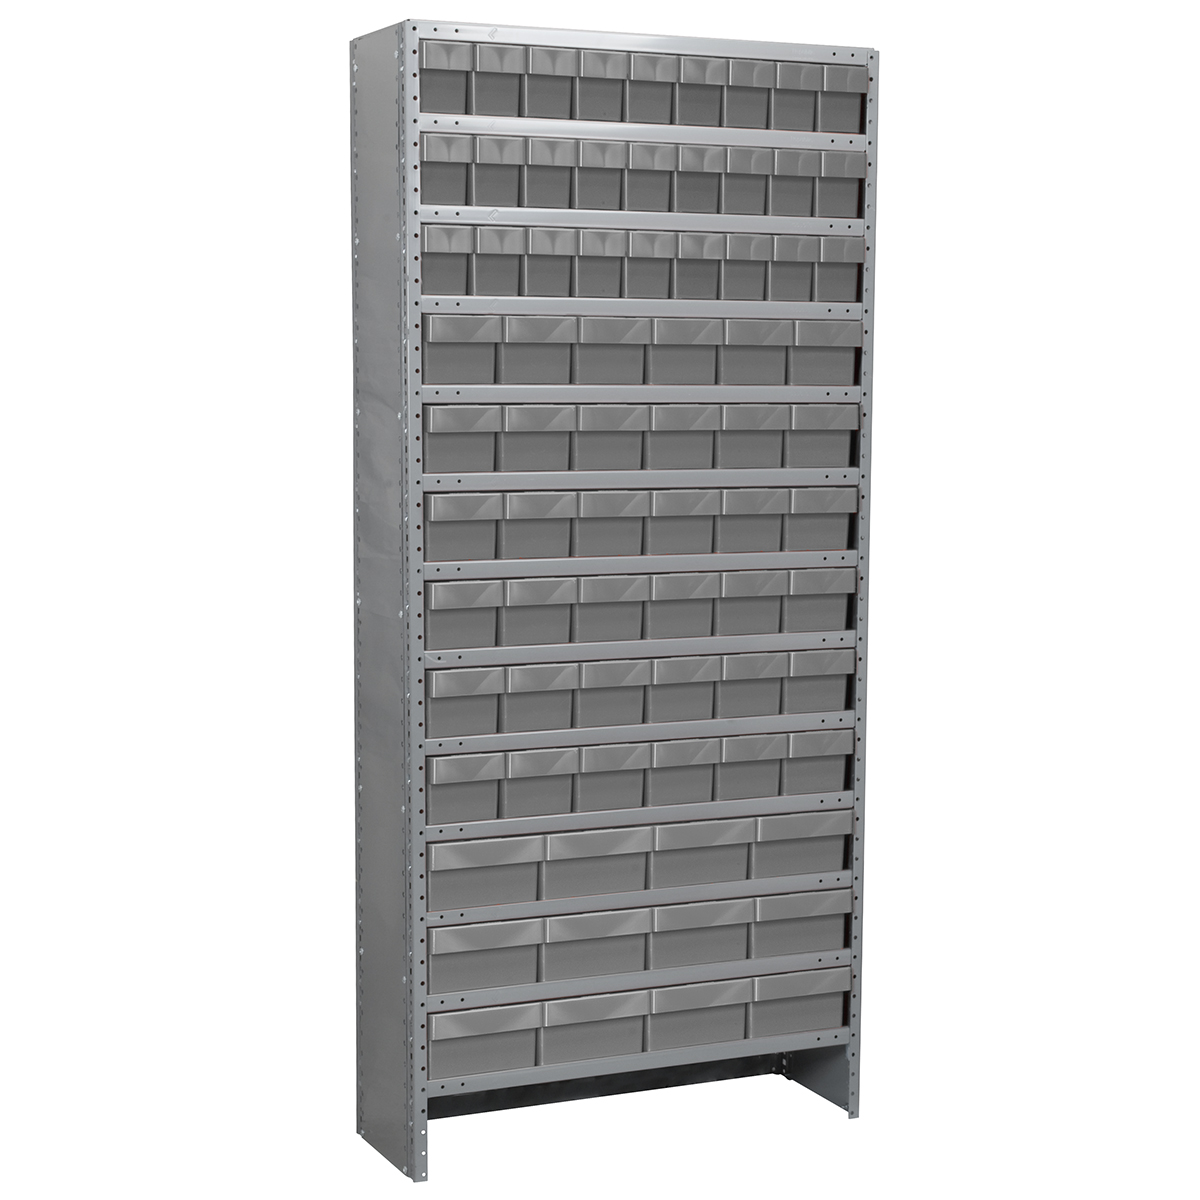 Enclosed Steel Shelving Kit, 12x36x79, 78 AkroDrawers, Gray/Gray.  This item sold in carton quantities of 1.